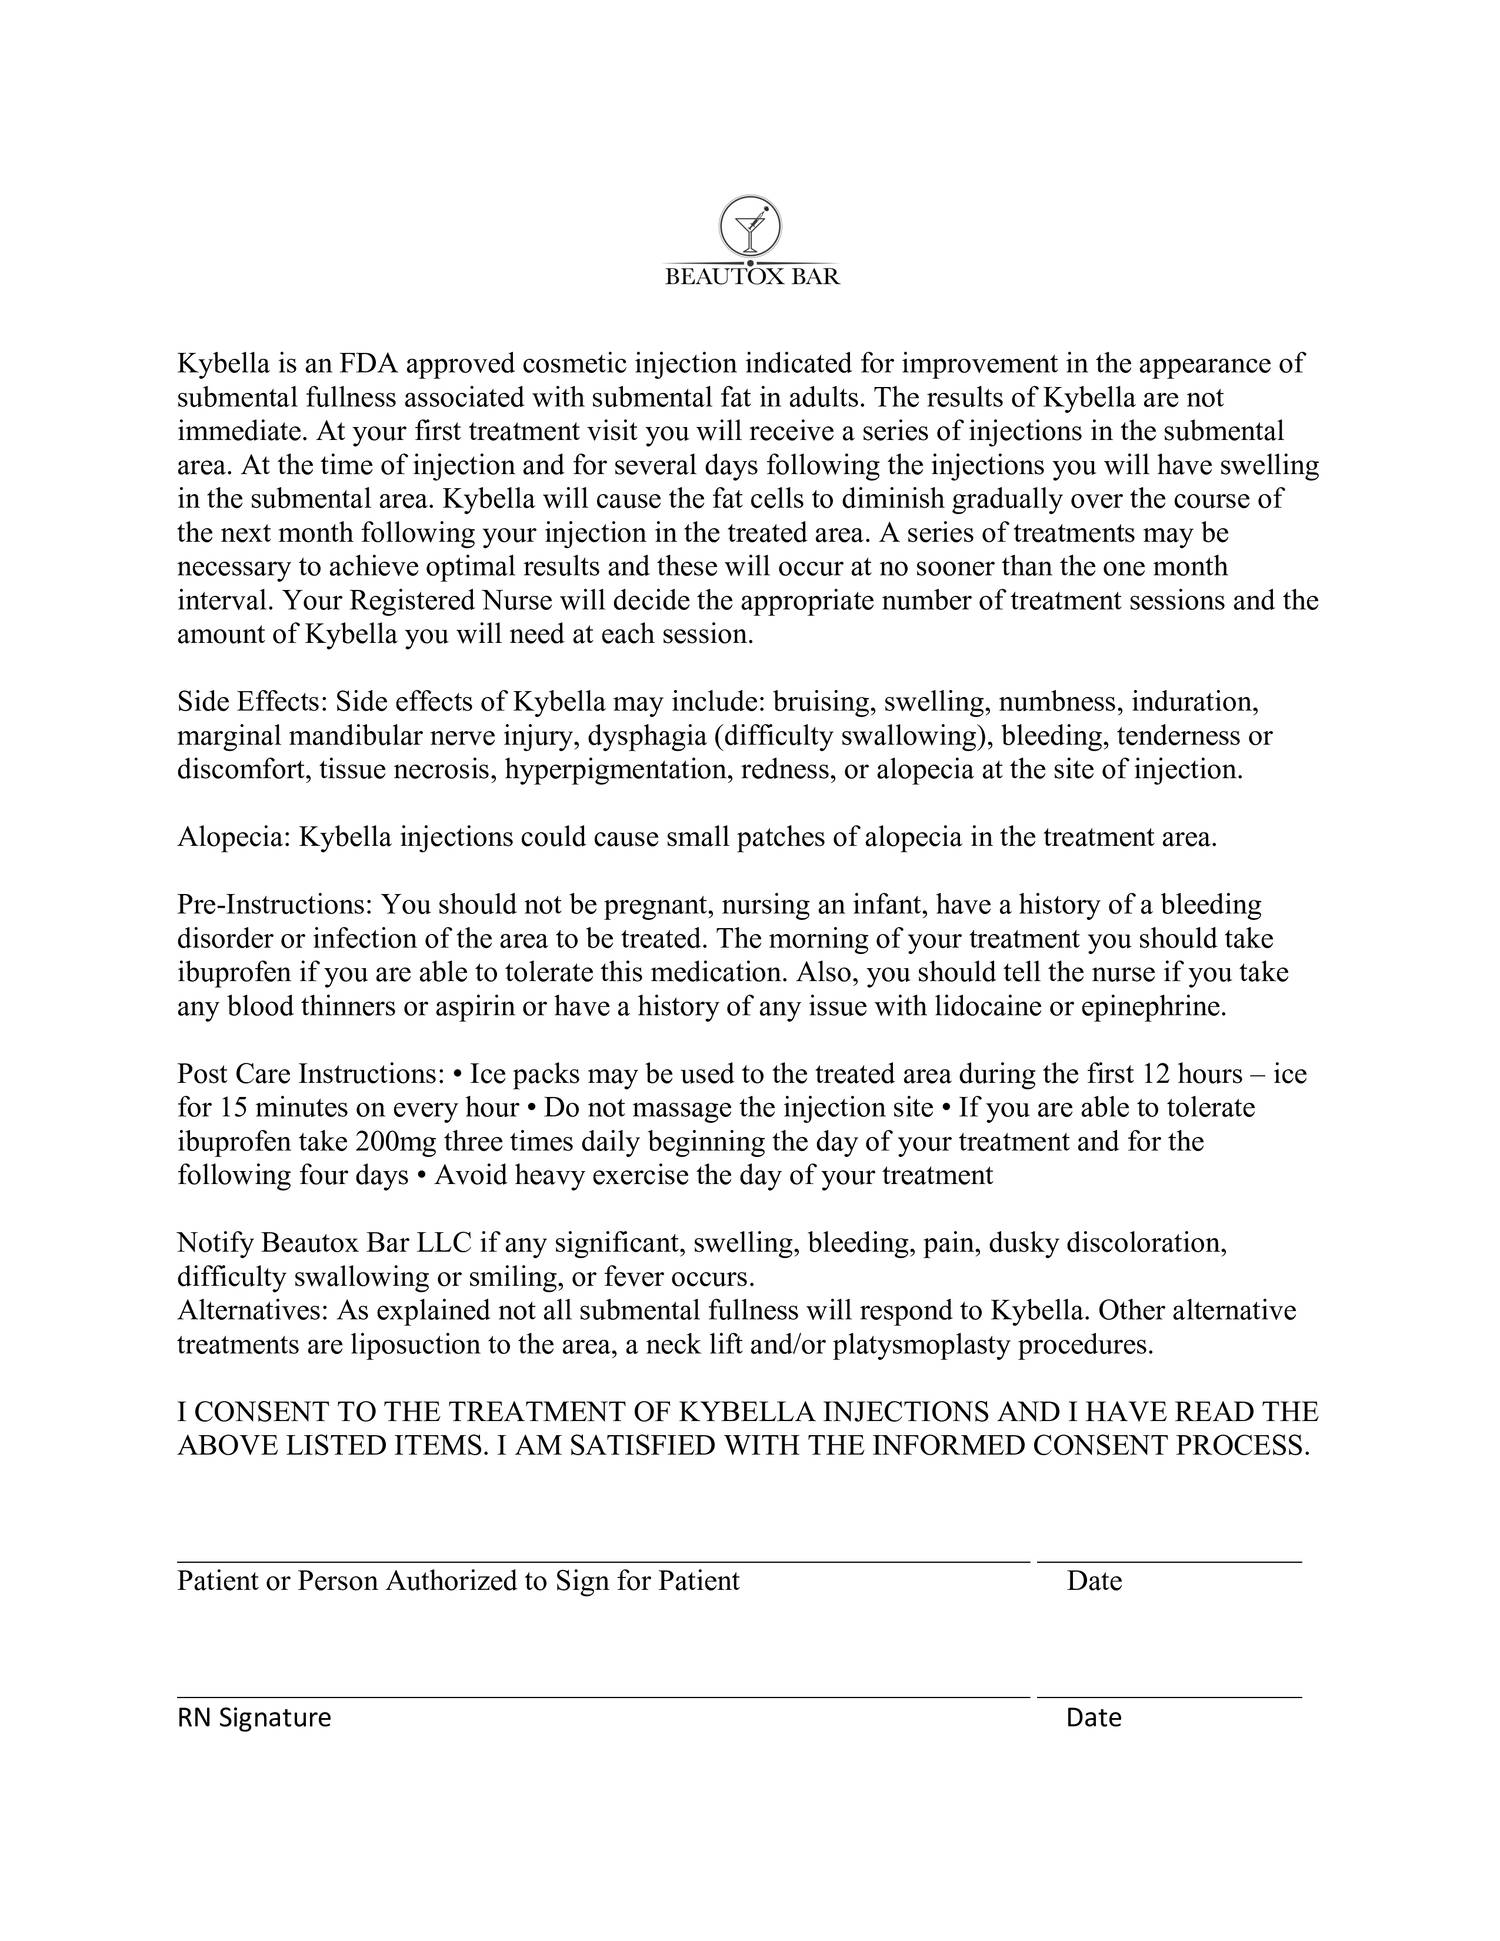 Kybella Consent Form Pdf Docdroid